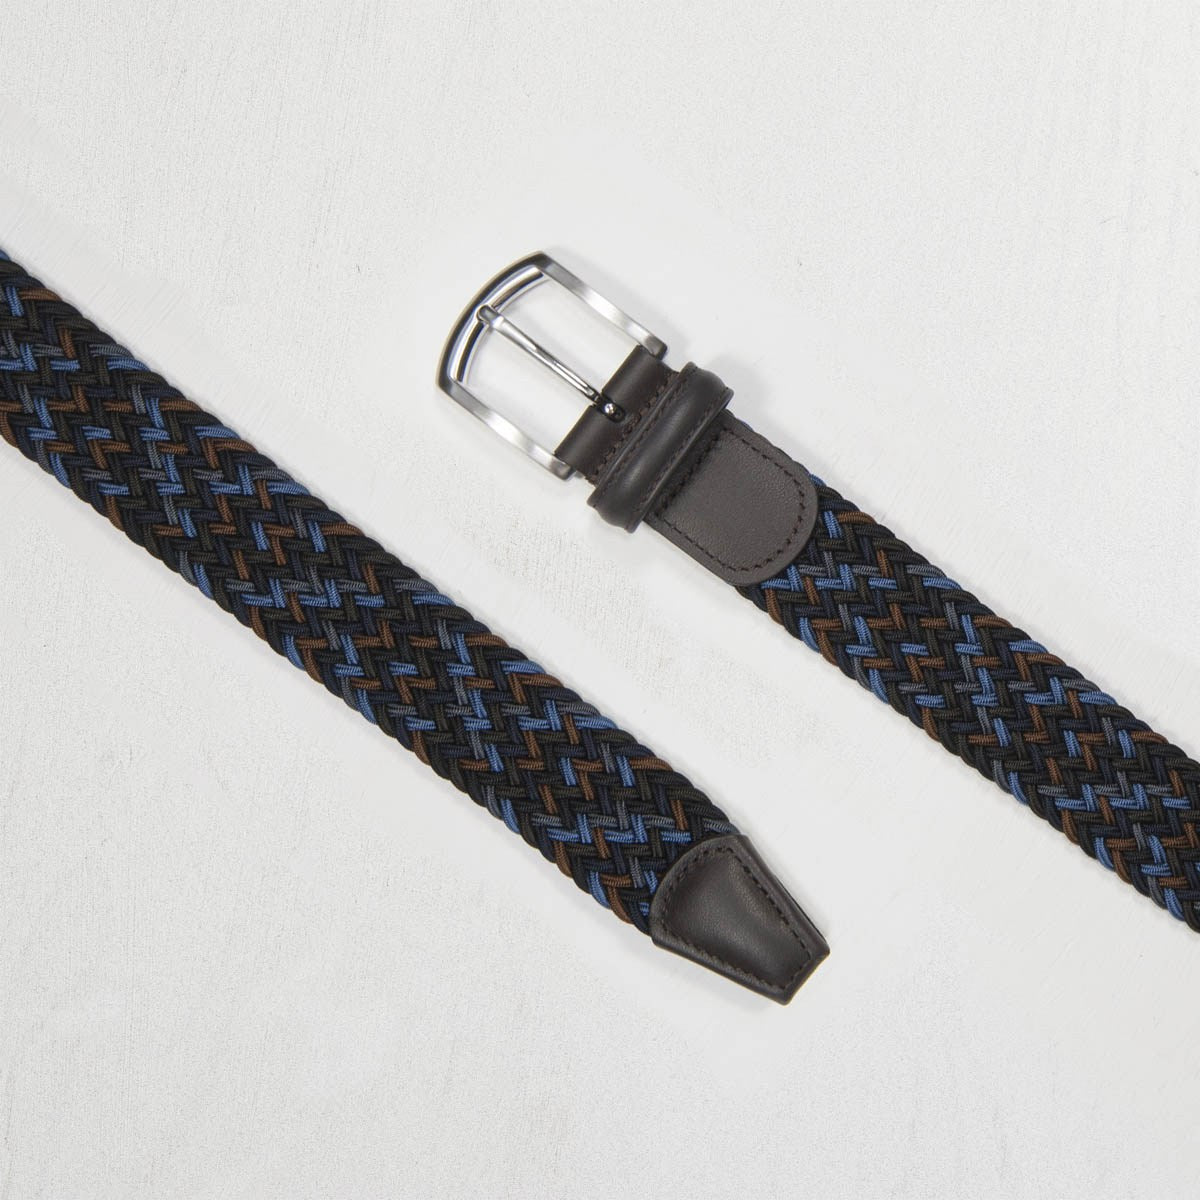 Nylon Woven Belt - Mr. Derk Apparel Ltd.